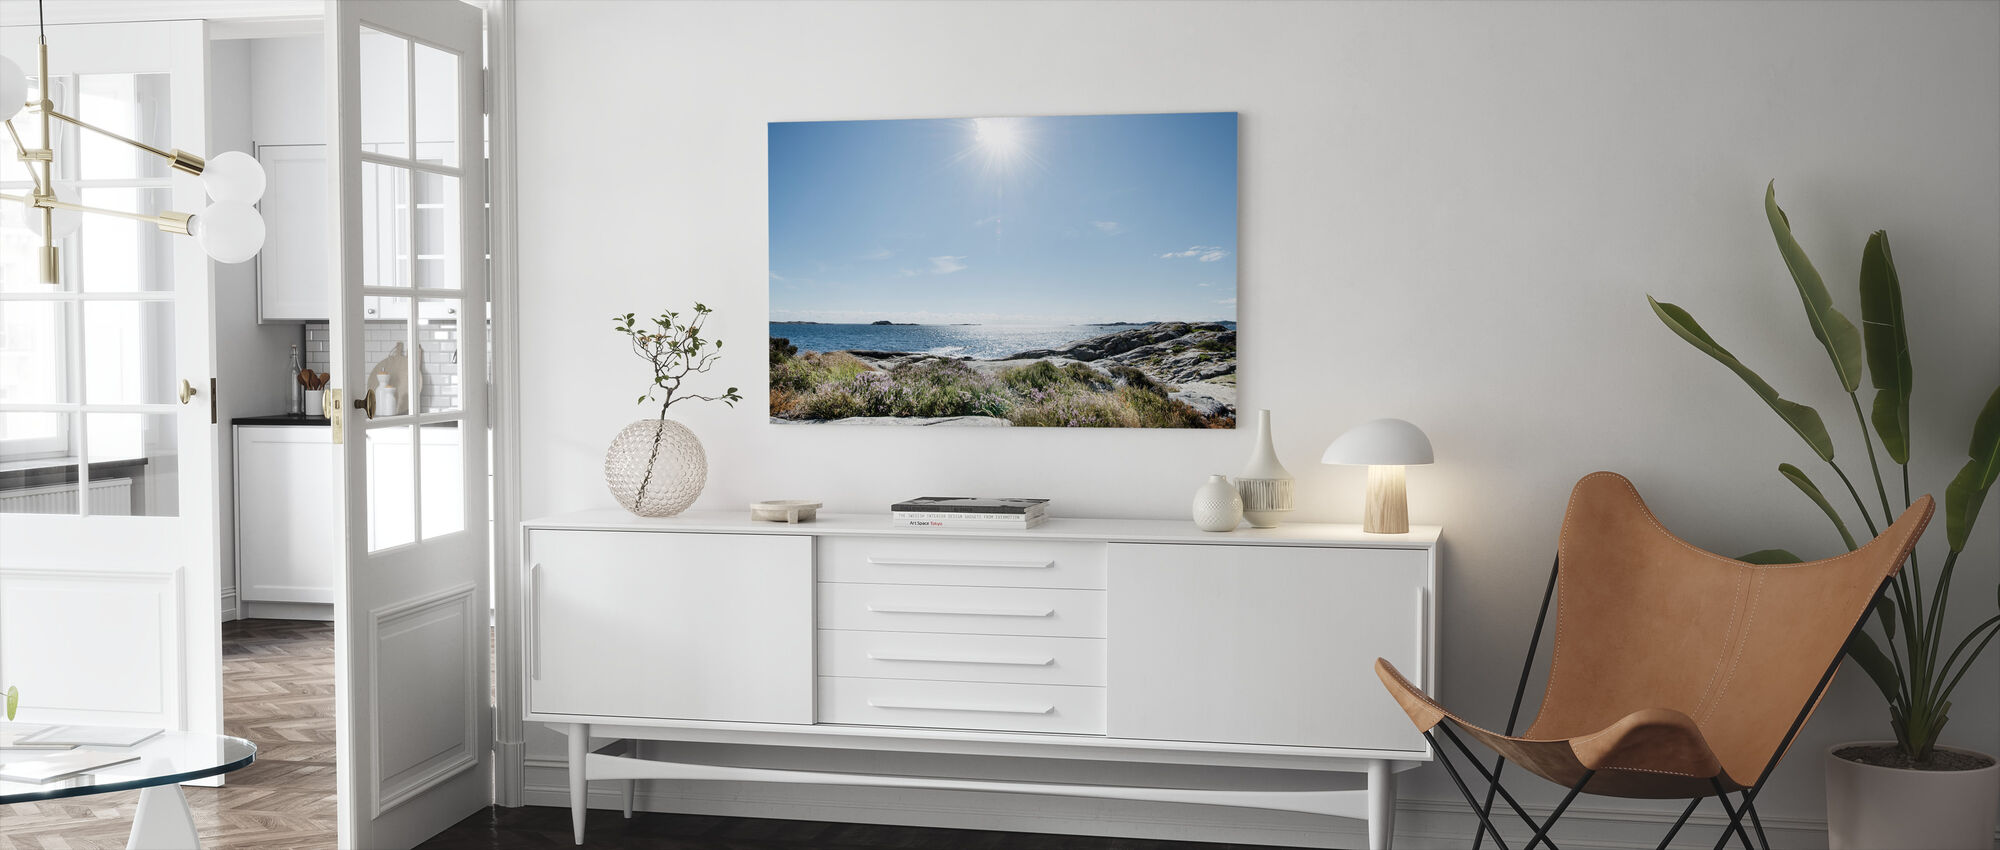 Sea in Bright Sunlight, South Norway - Canvas print - Living Room